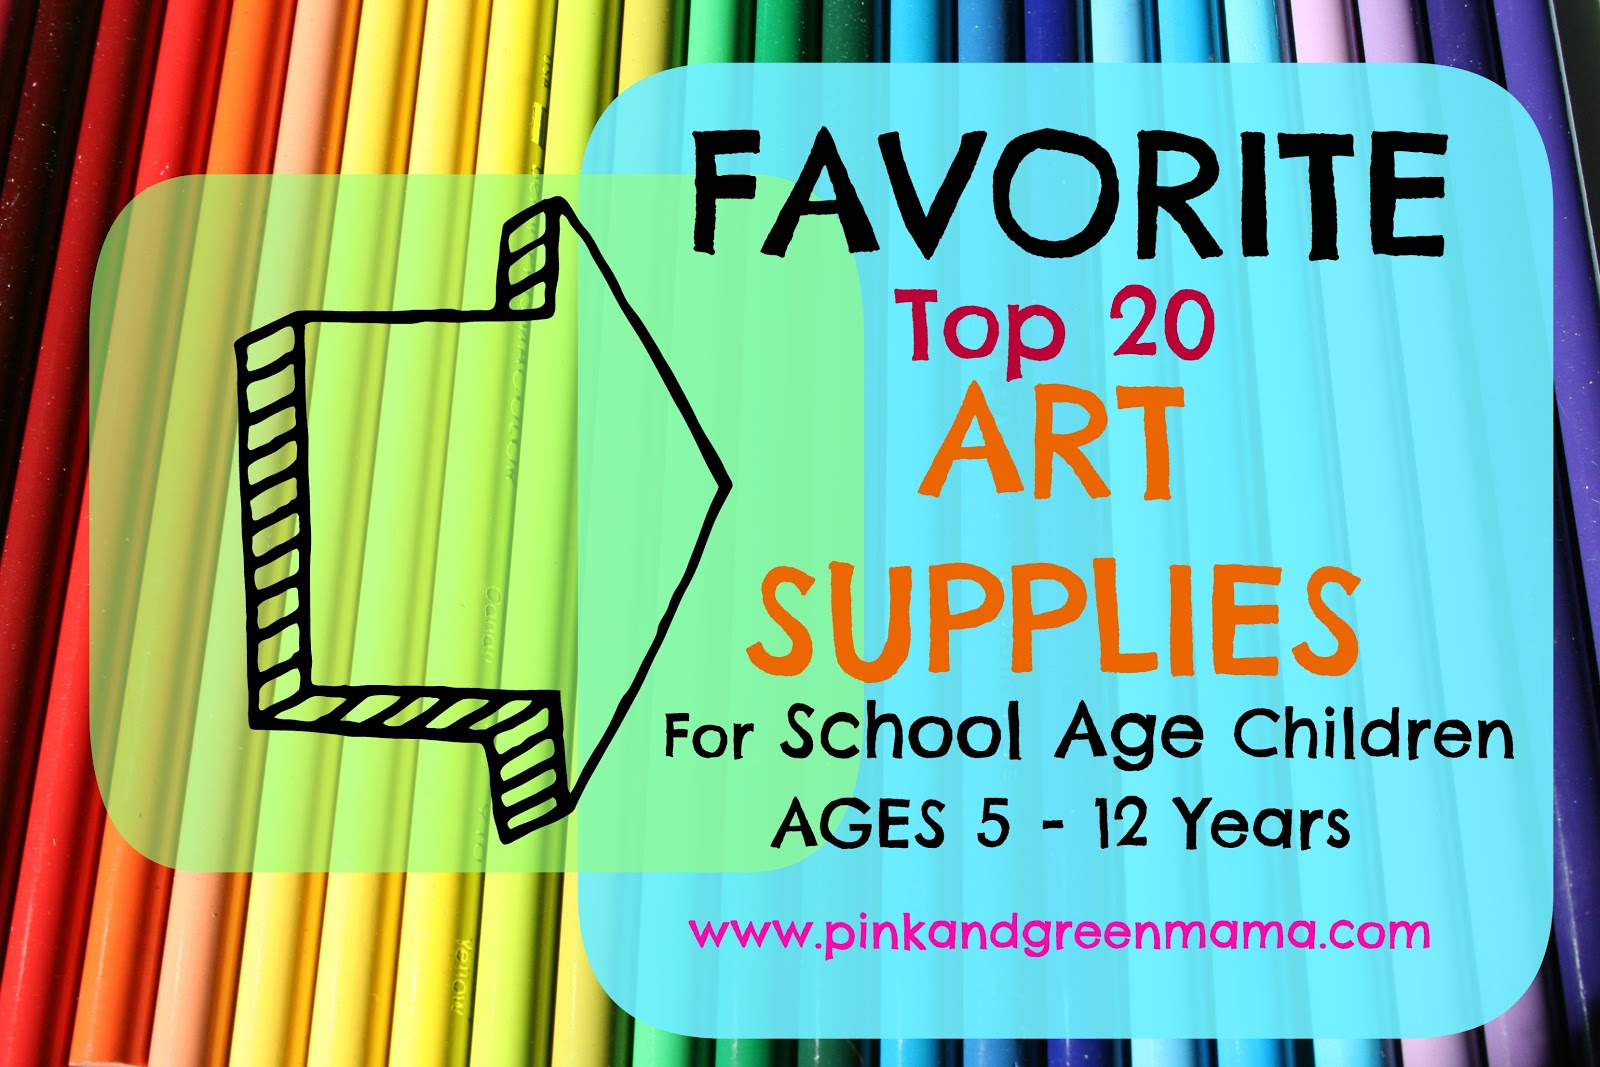 - Favorite Top 20 Art Supplies School Age Kids